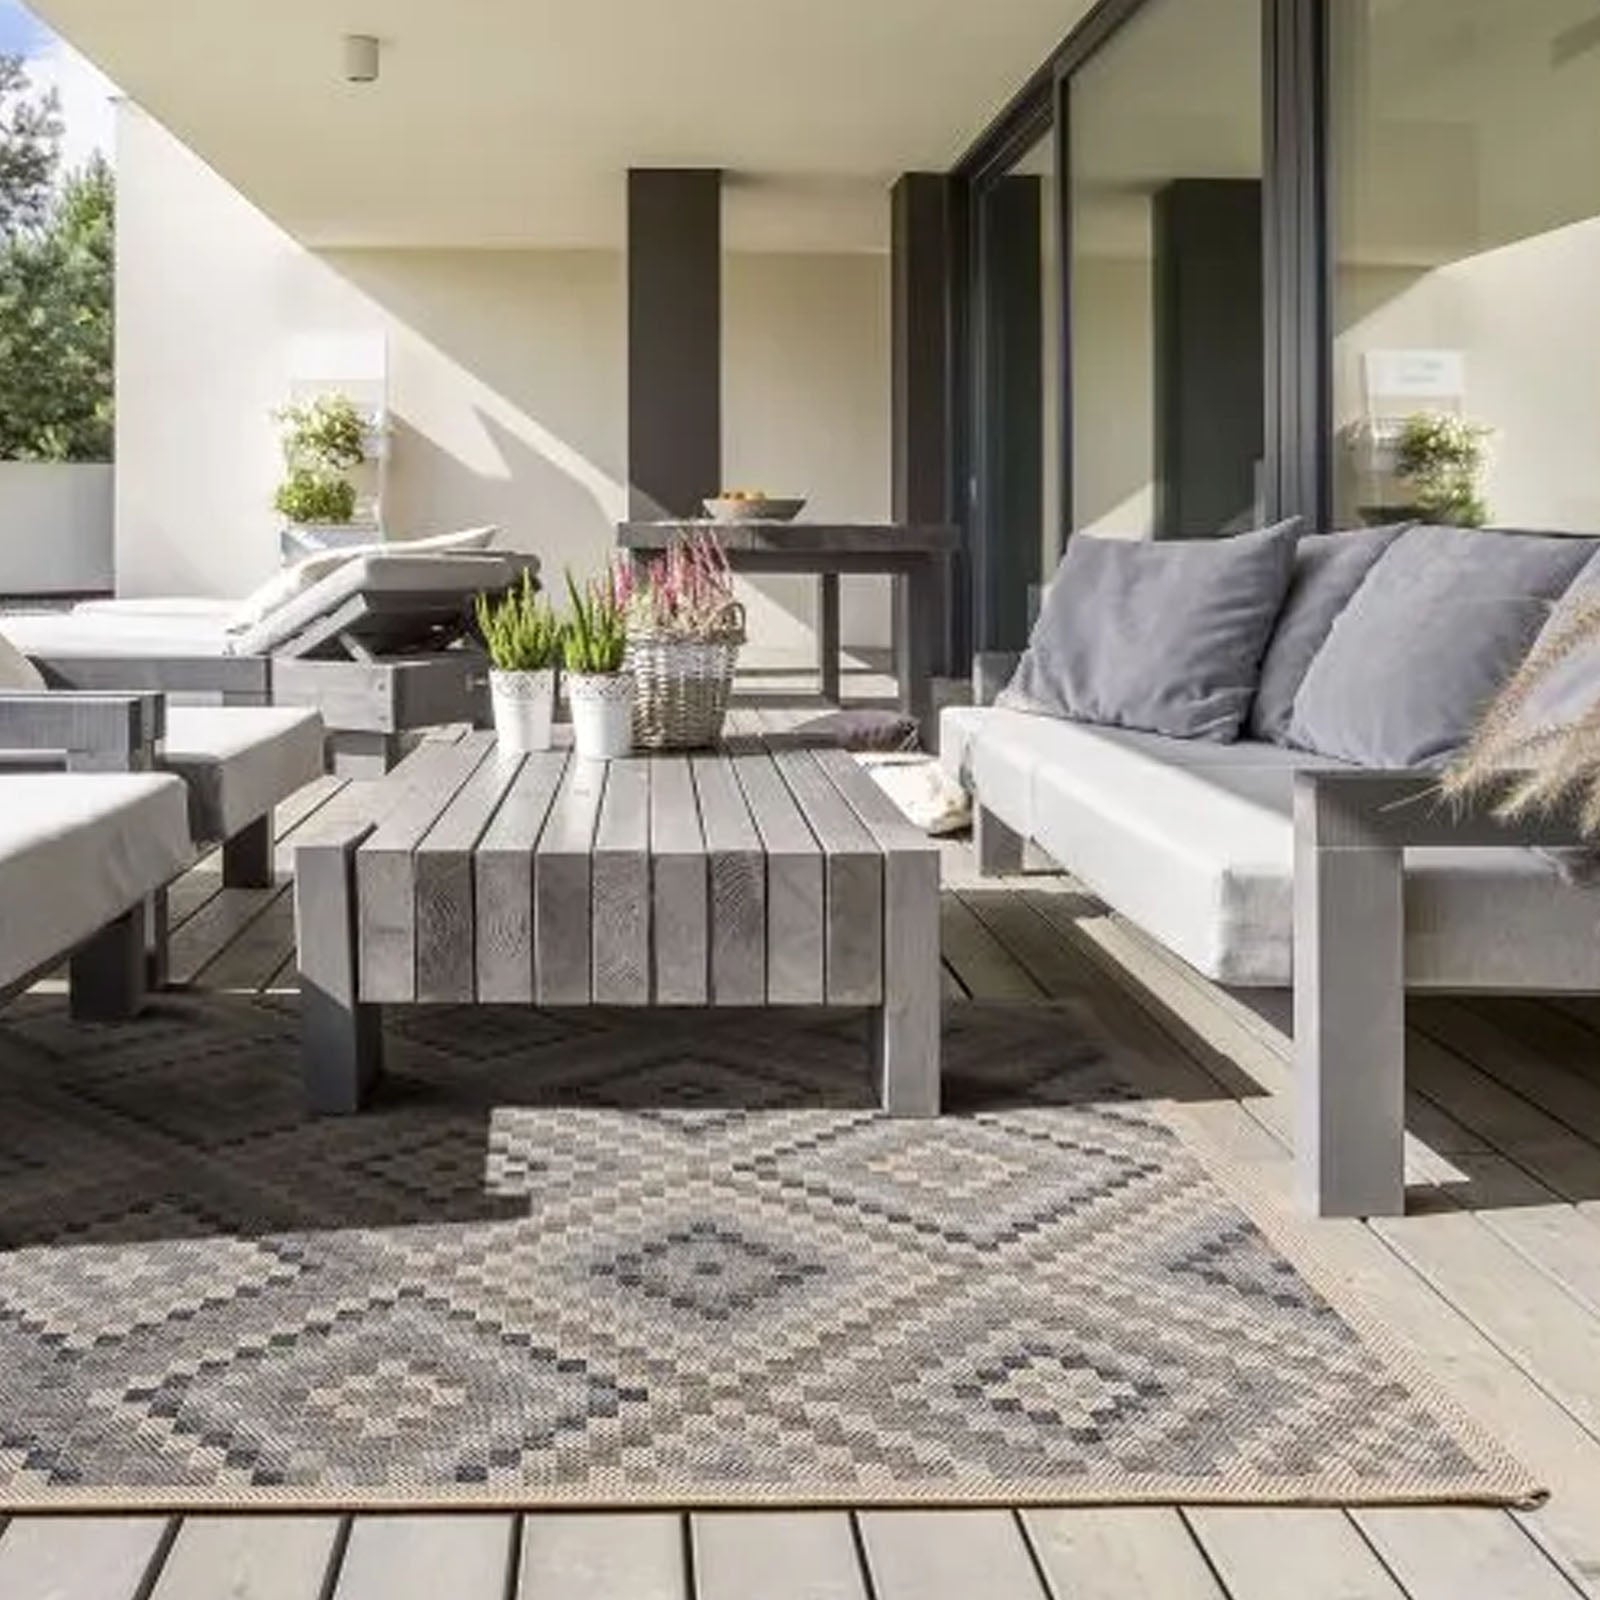 90X160 cm OUTDOOR/INDOOR RUG Simco-SIM-21-Beige-s - ebarza